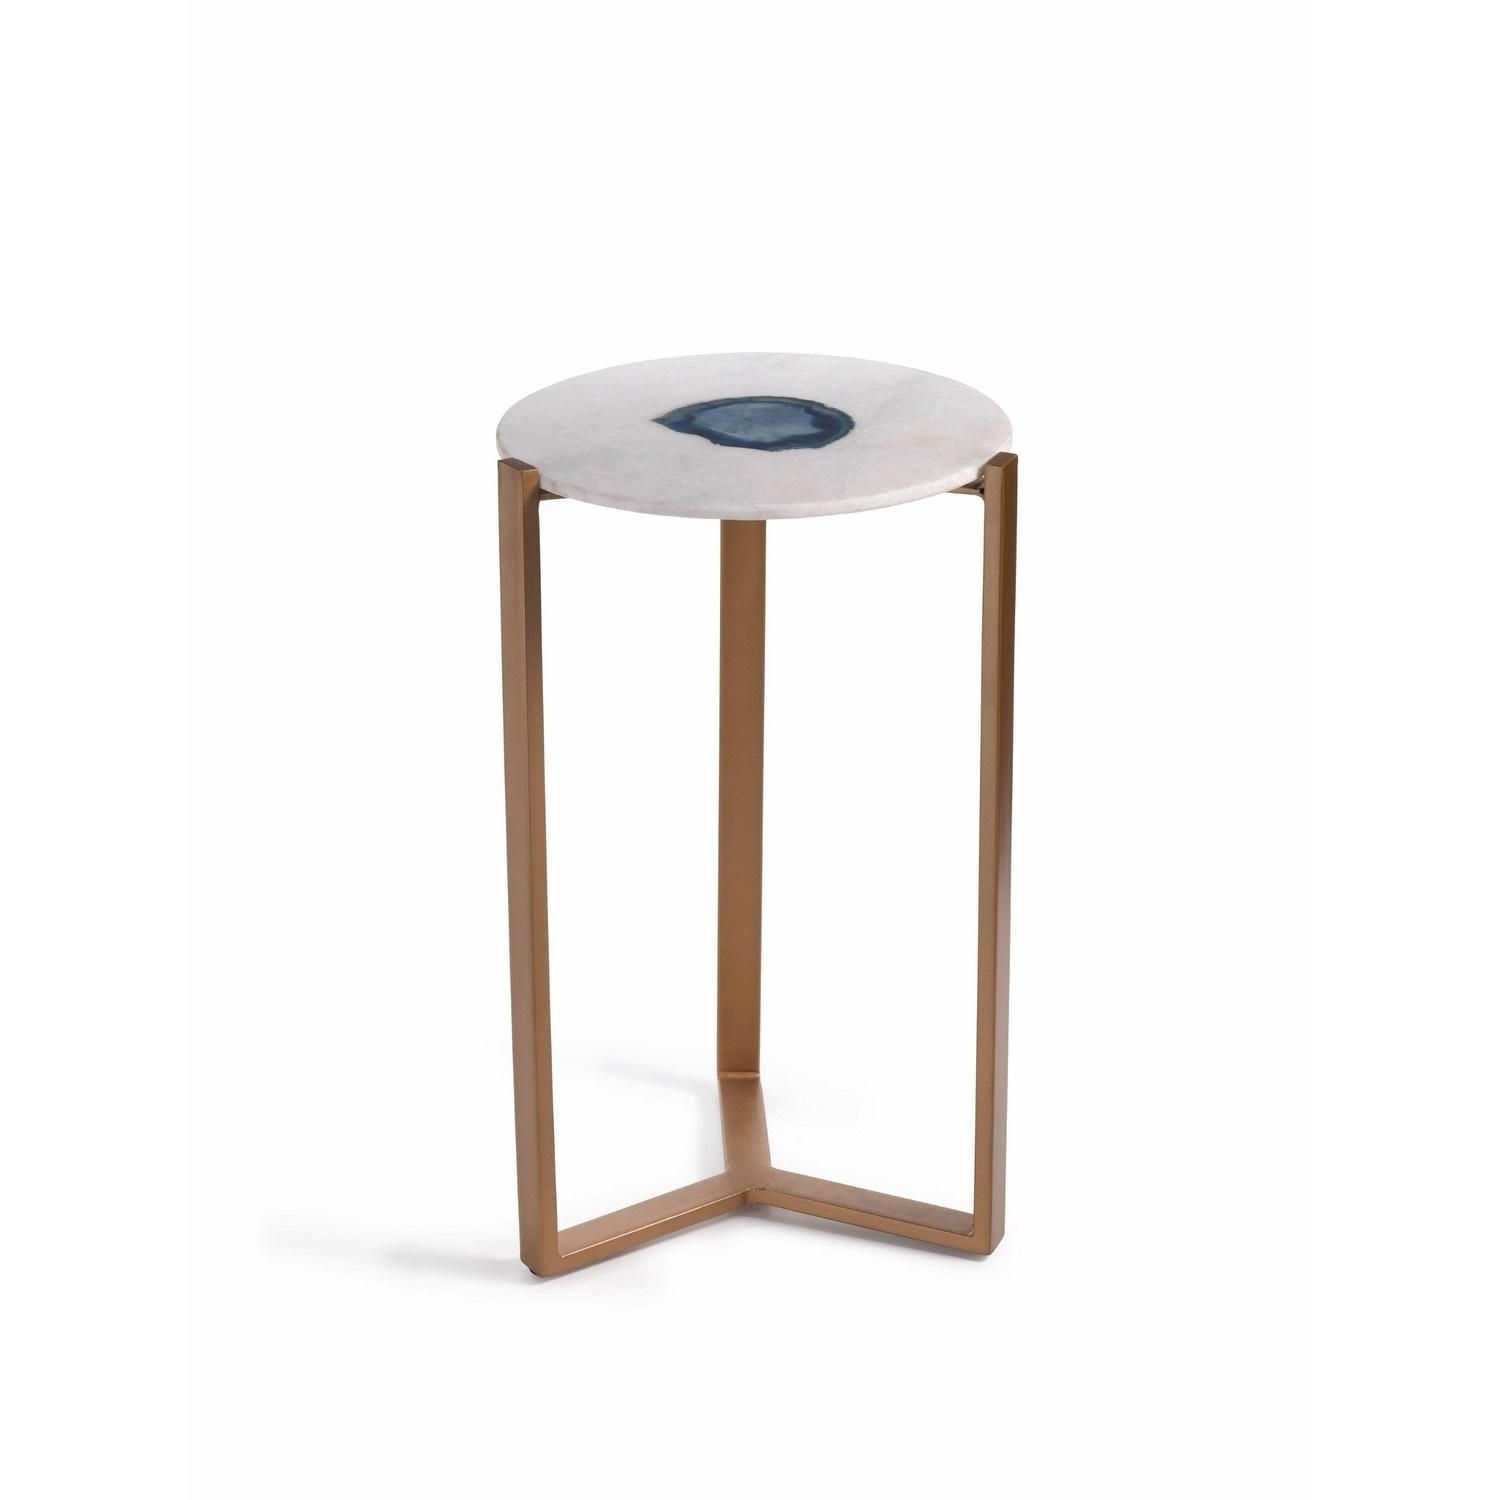 caspian tall accent table marble and inlaid agate free zodax inch high inlay simplify pedestal shipping today threshold patio furniture ikea small alexa echo dot piece dining sets